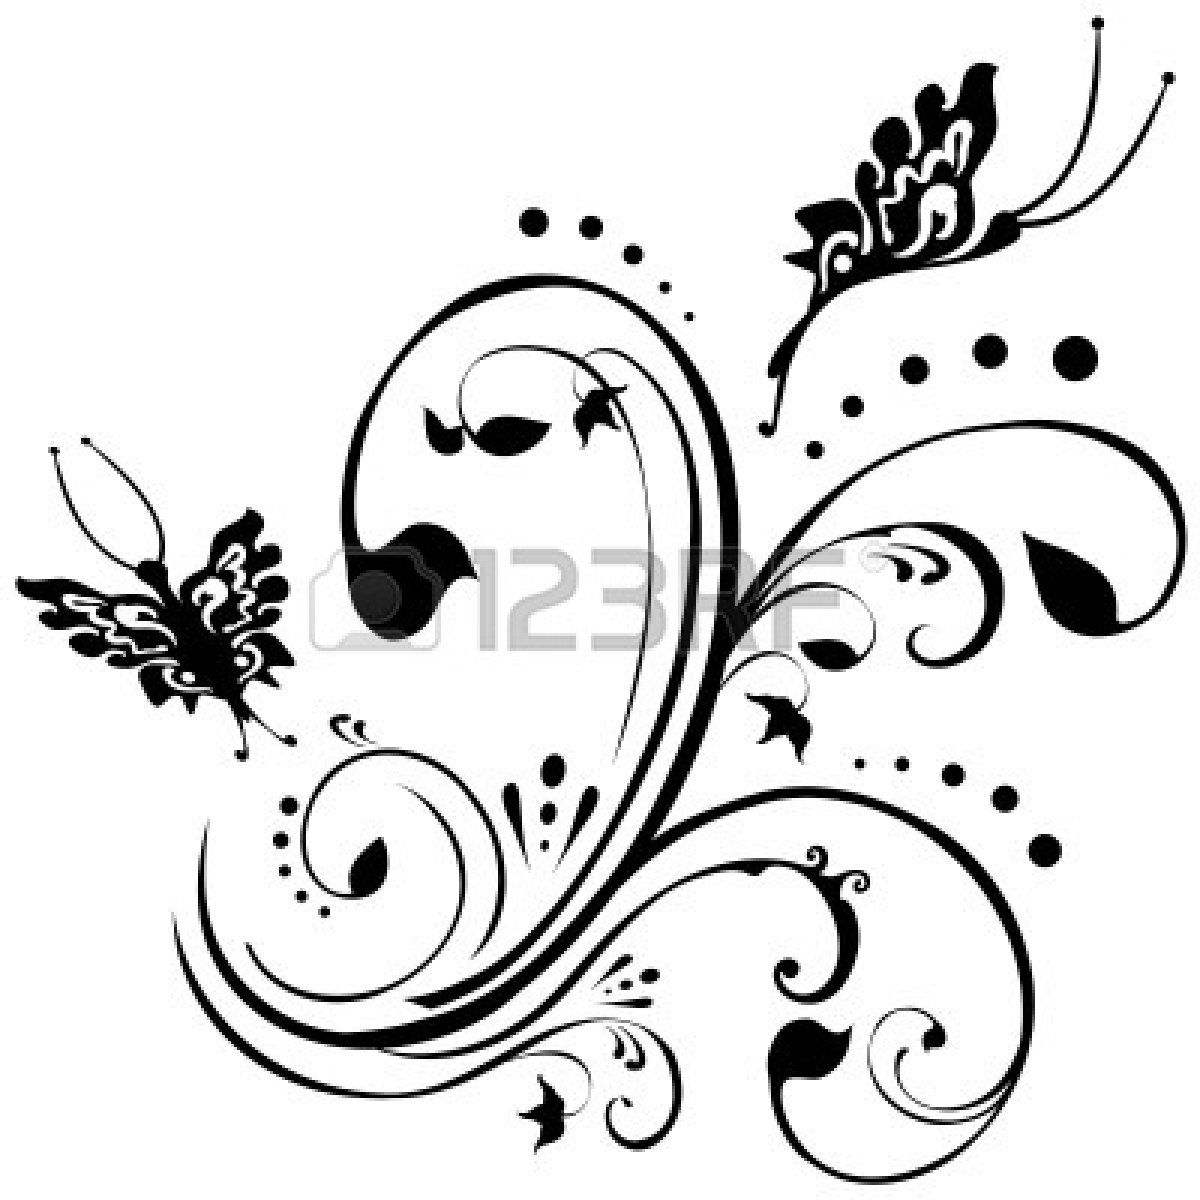 White on black tattoo ideas butterfliesflutteringaroundfoliagefloraldesigninblack